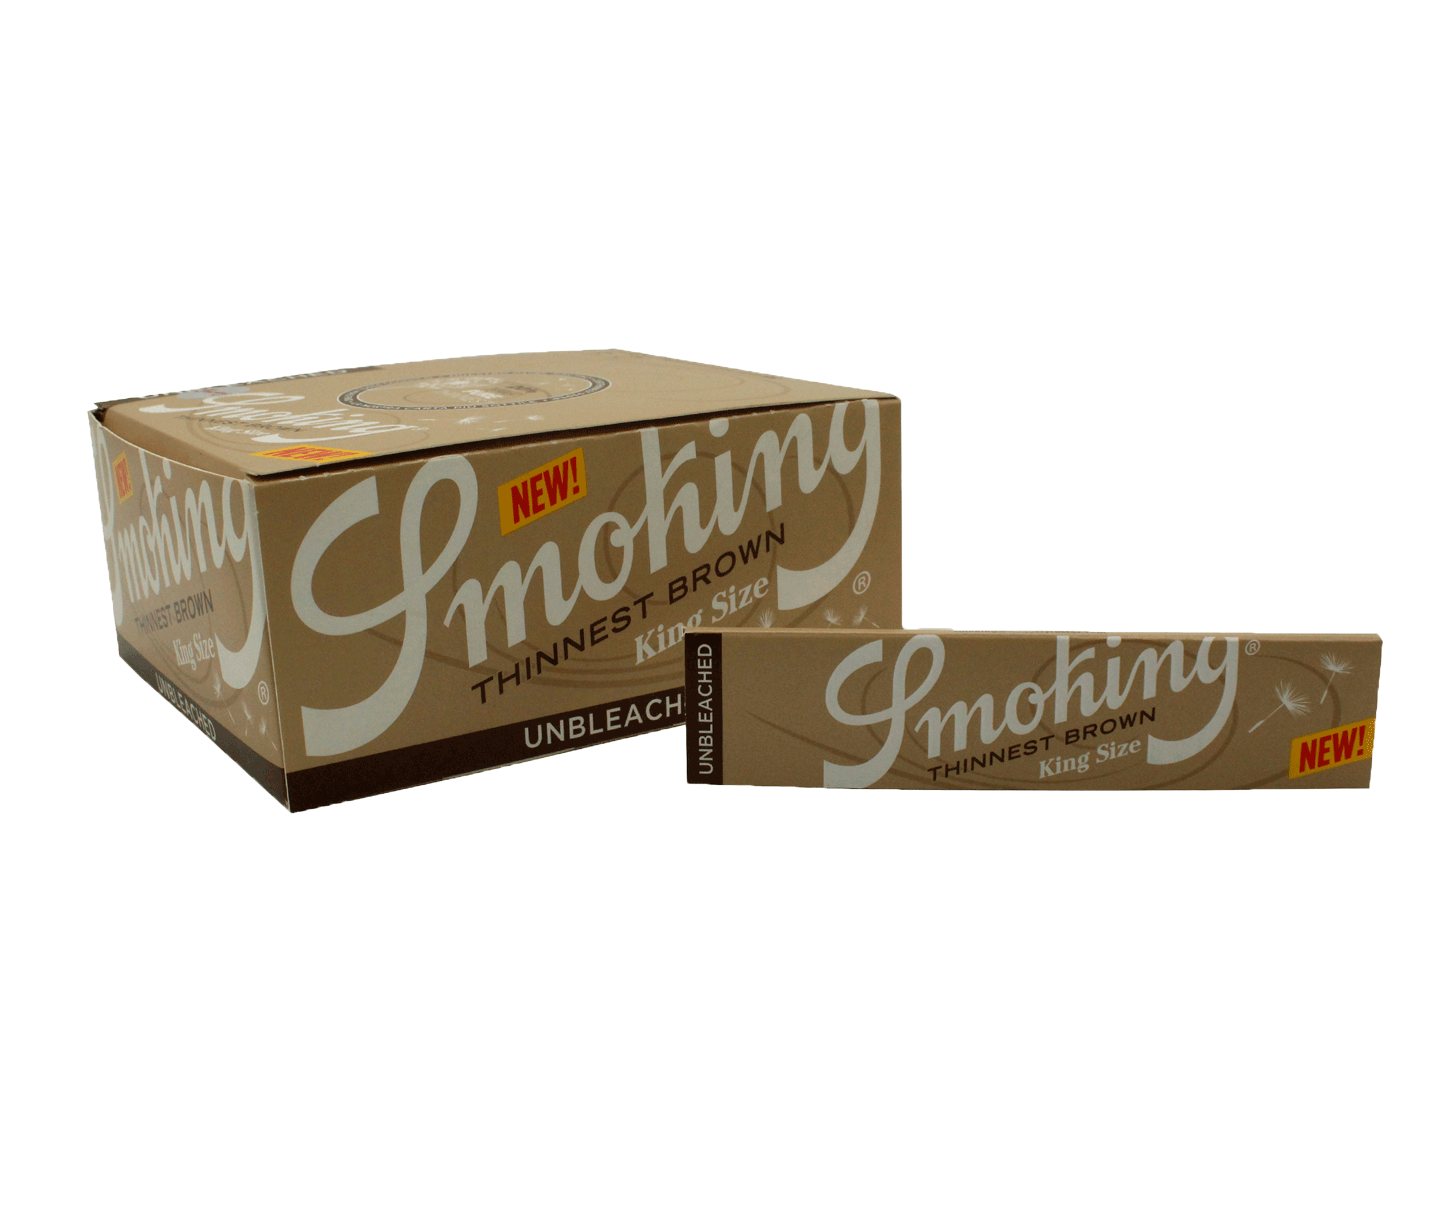 SEDA SMOKING THINNEST BROWN KING SIZE (Un.)